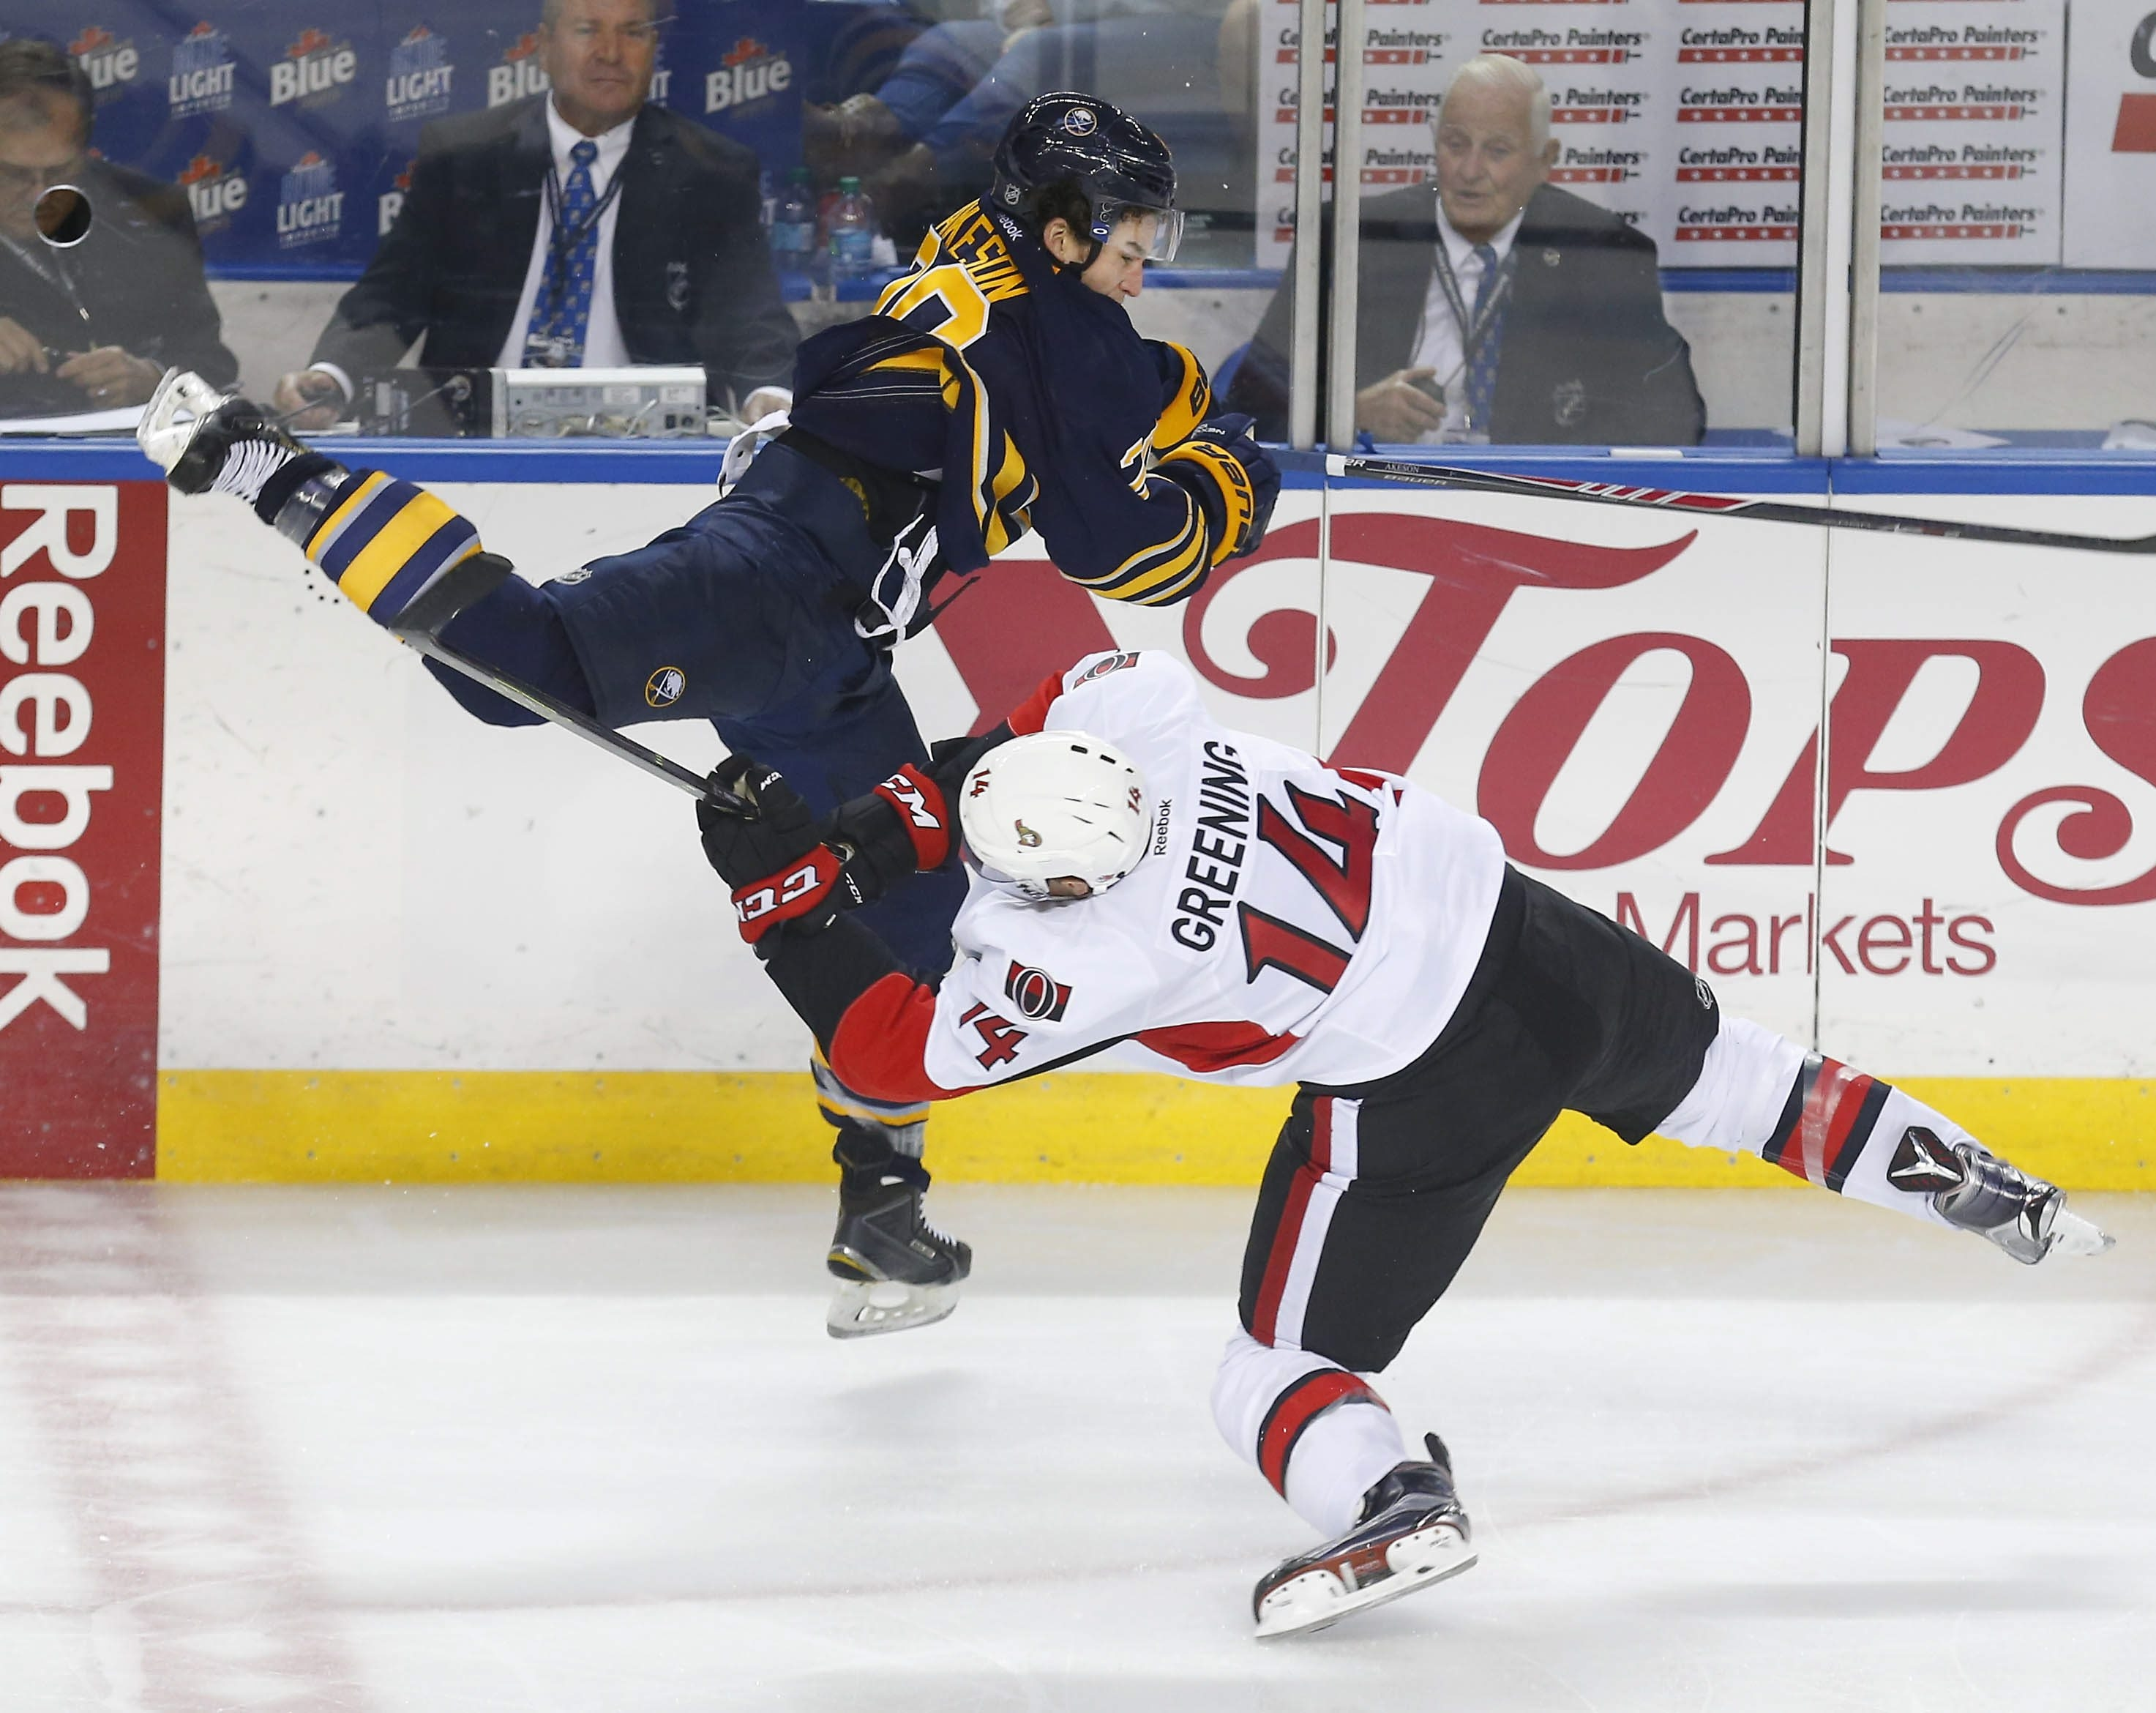 The Sabres' Jason Akeson puts a big hit on the Senators' Colin Greening during the third period of Wednesday's preseason game at First Niagara Center. (Mark Mulville/Buffalo News)